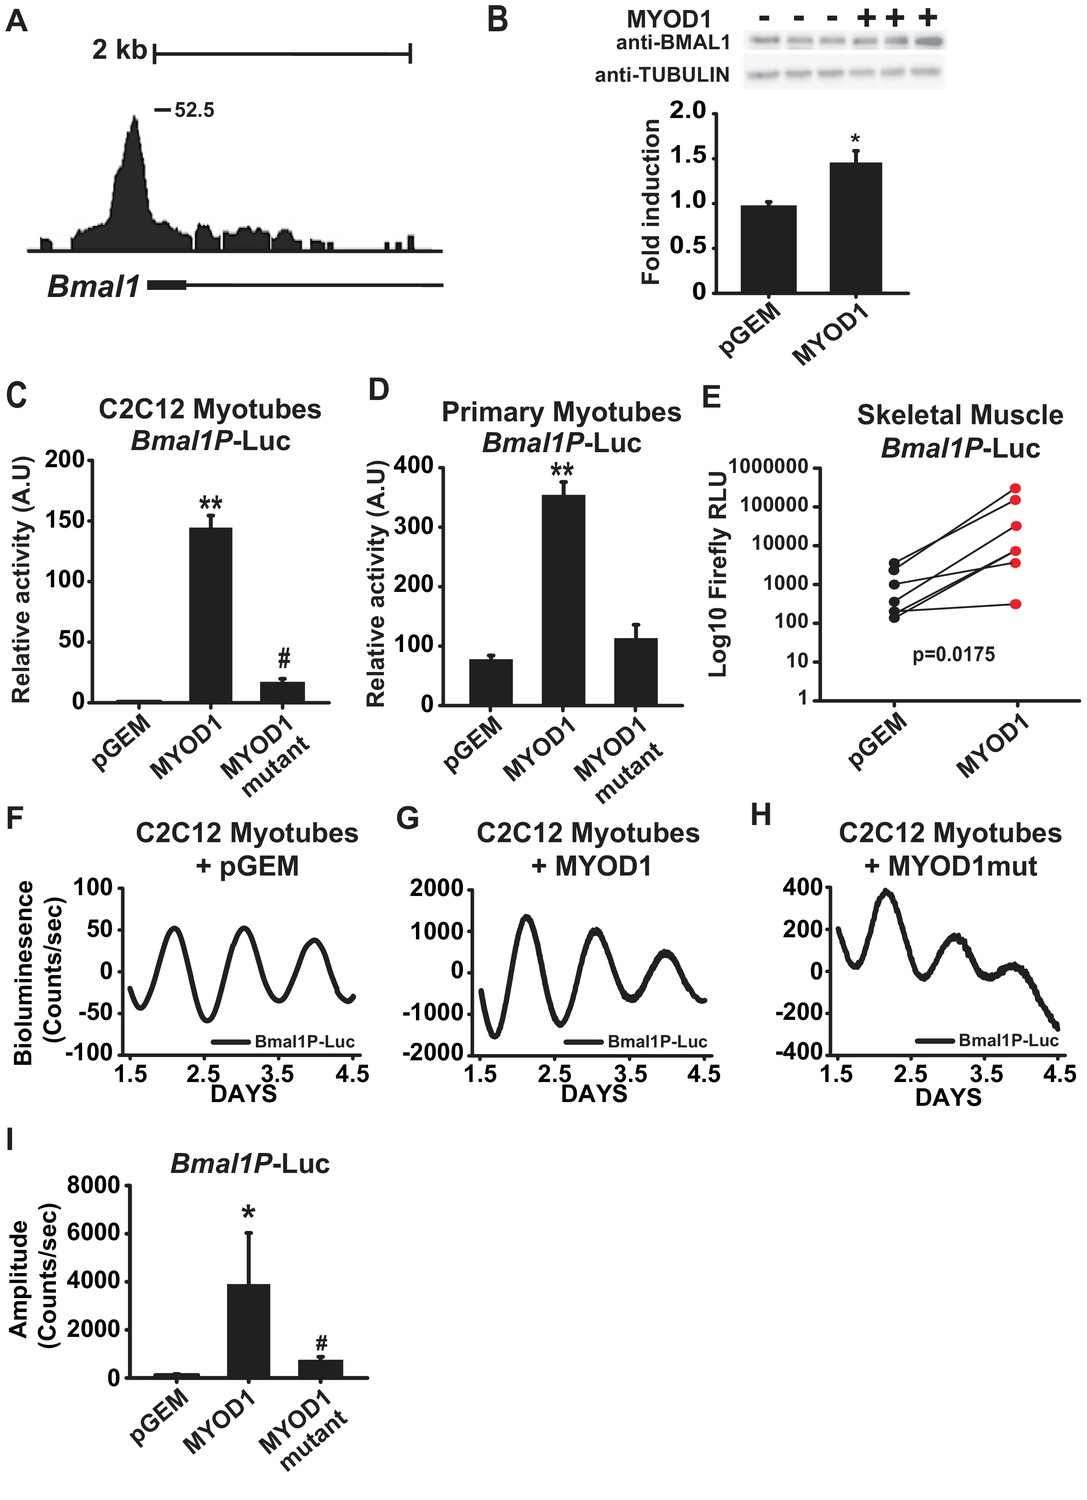 MYOD1 functions as a clock amplifier as well as a critical